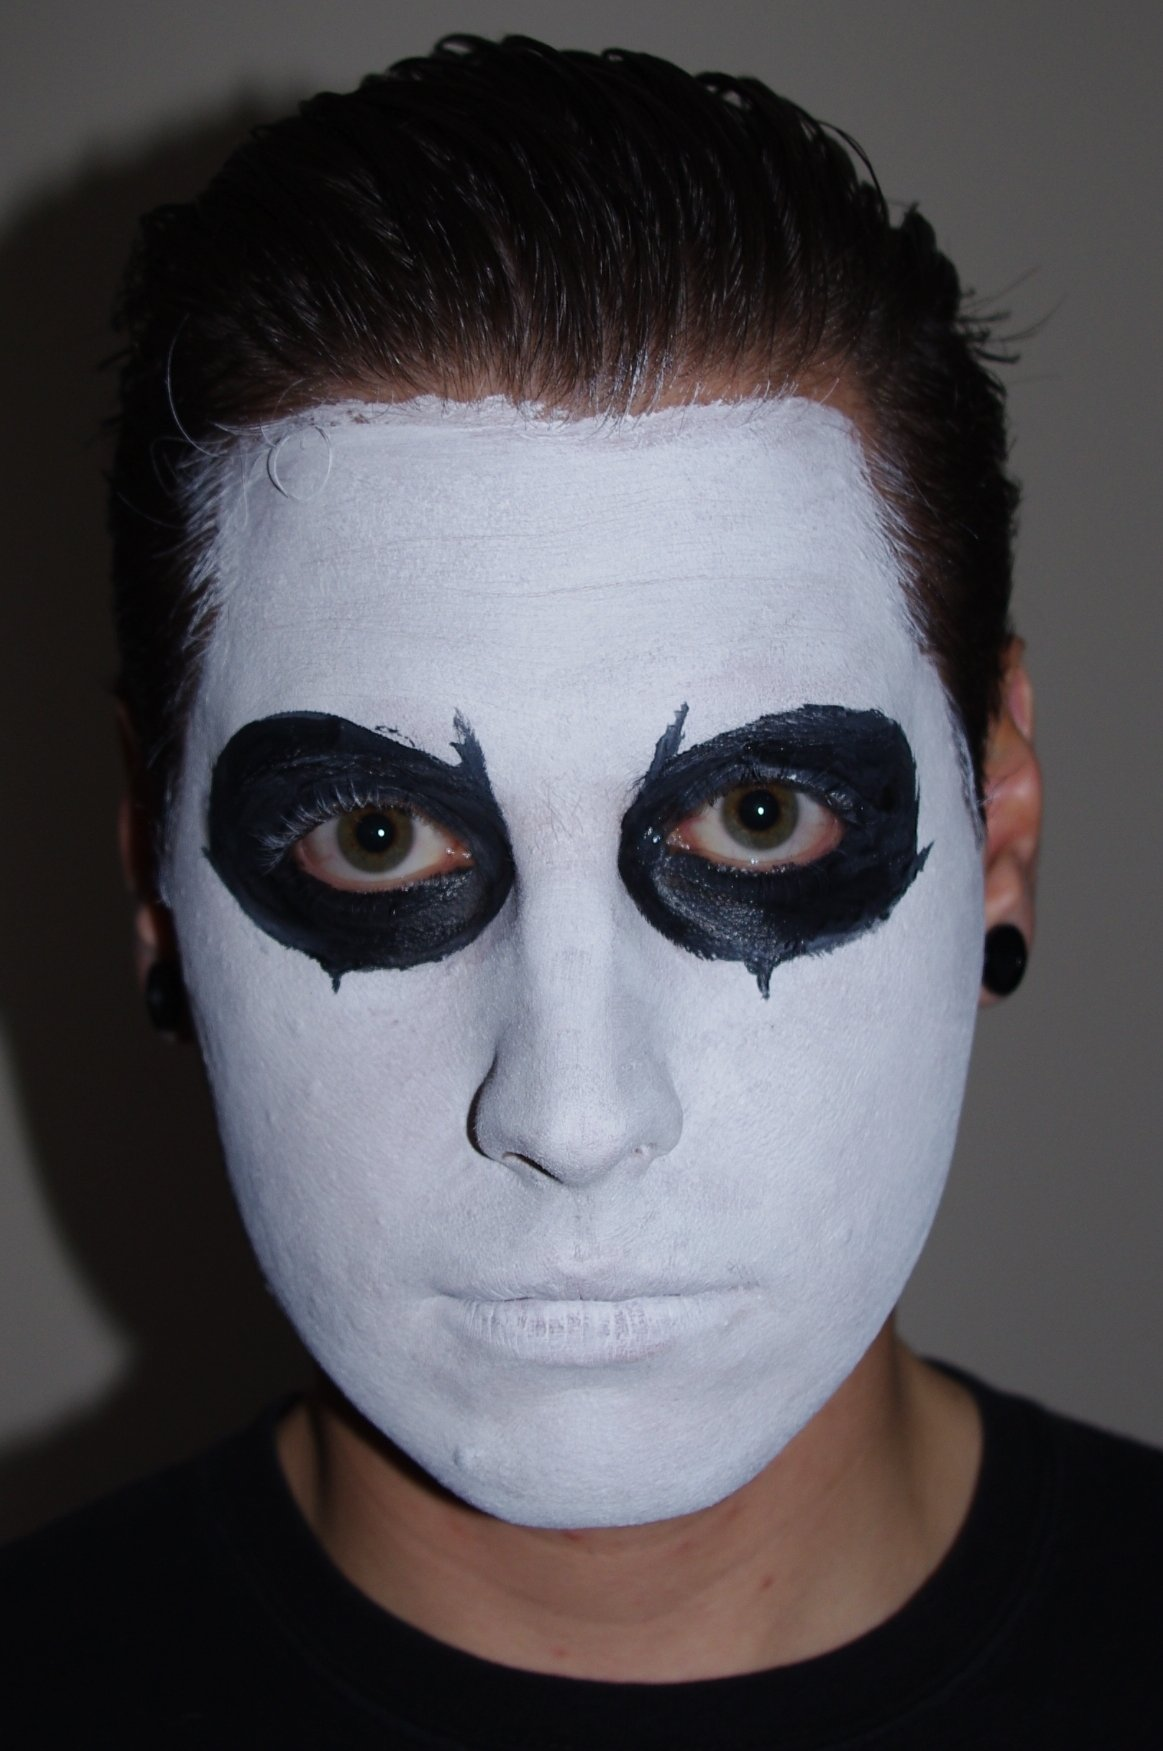 10 Wonderful Black And White Face Paint Ideas For Halloween white face makeup for halloween face makeup ideas 2020